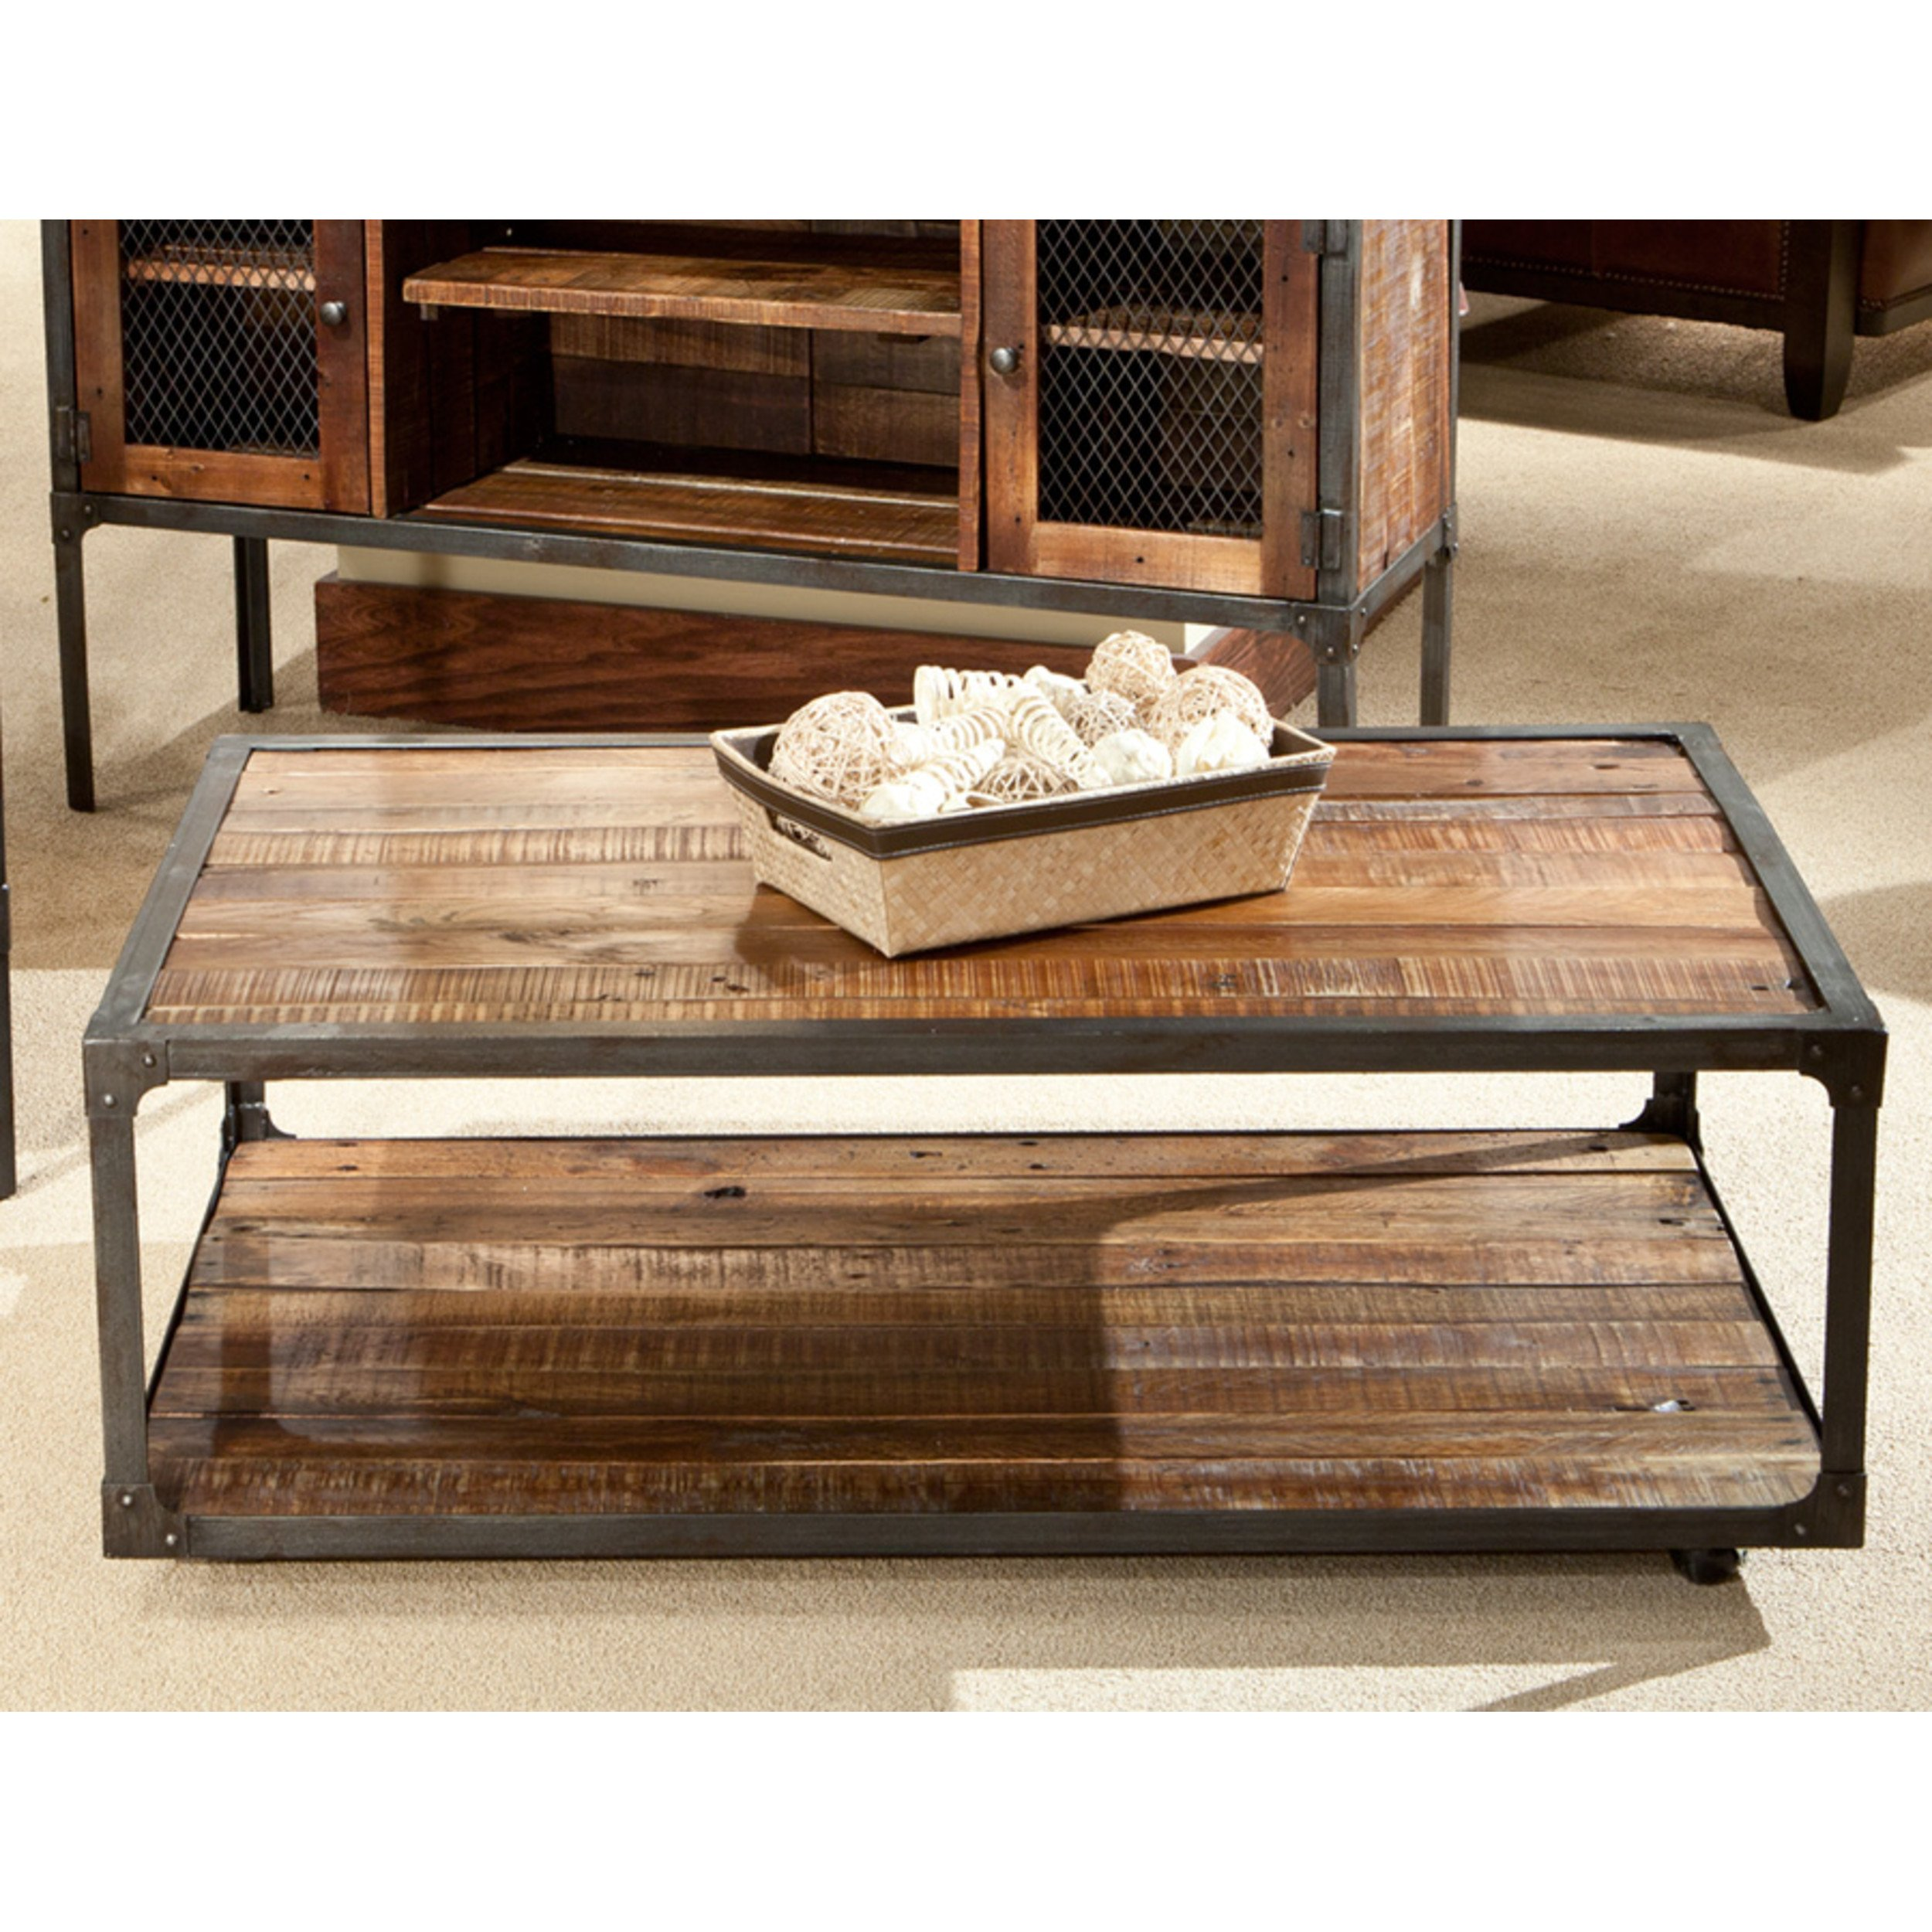 Emerald Home Medium Brown Coffee Table with Open Shelving, Metal Frame, and Casters